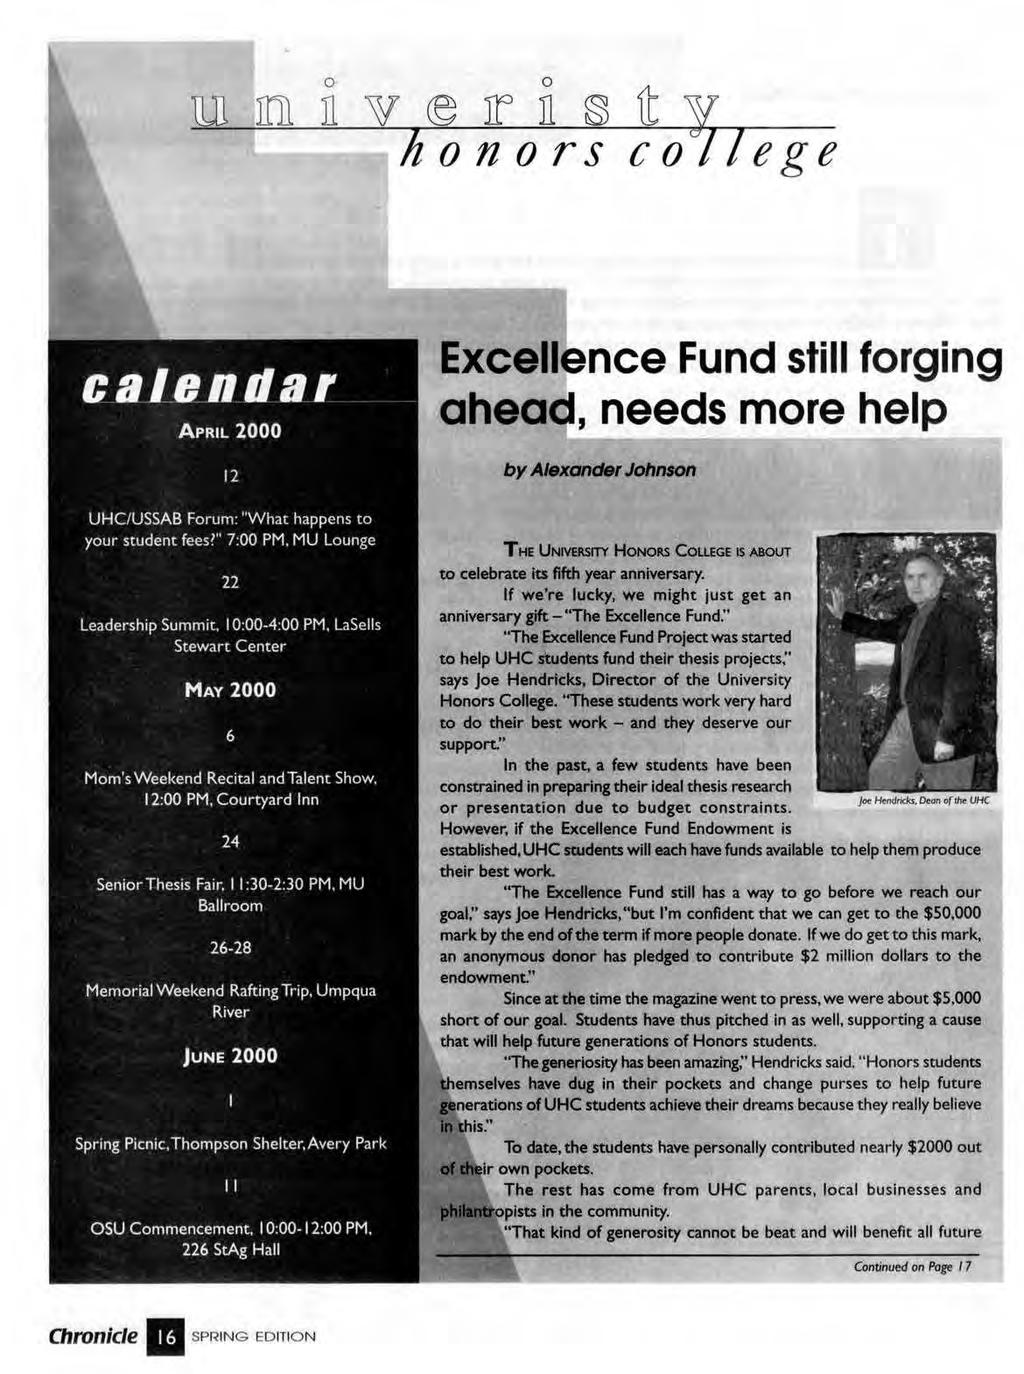 "0 vr fty honors college calendar APRIL 2000 12 Excellence Fund still forging ahead, needs more help by Alexander Johnson UHC/USSAB Forum: 'What happens to your student fees?"" 7:00 PM."